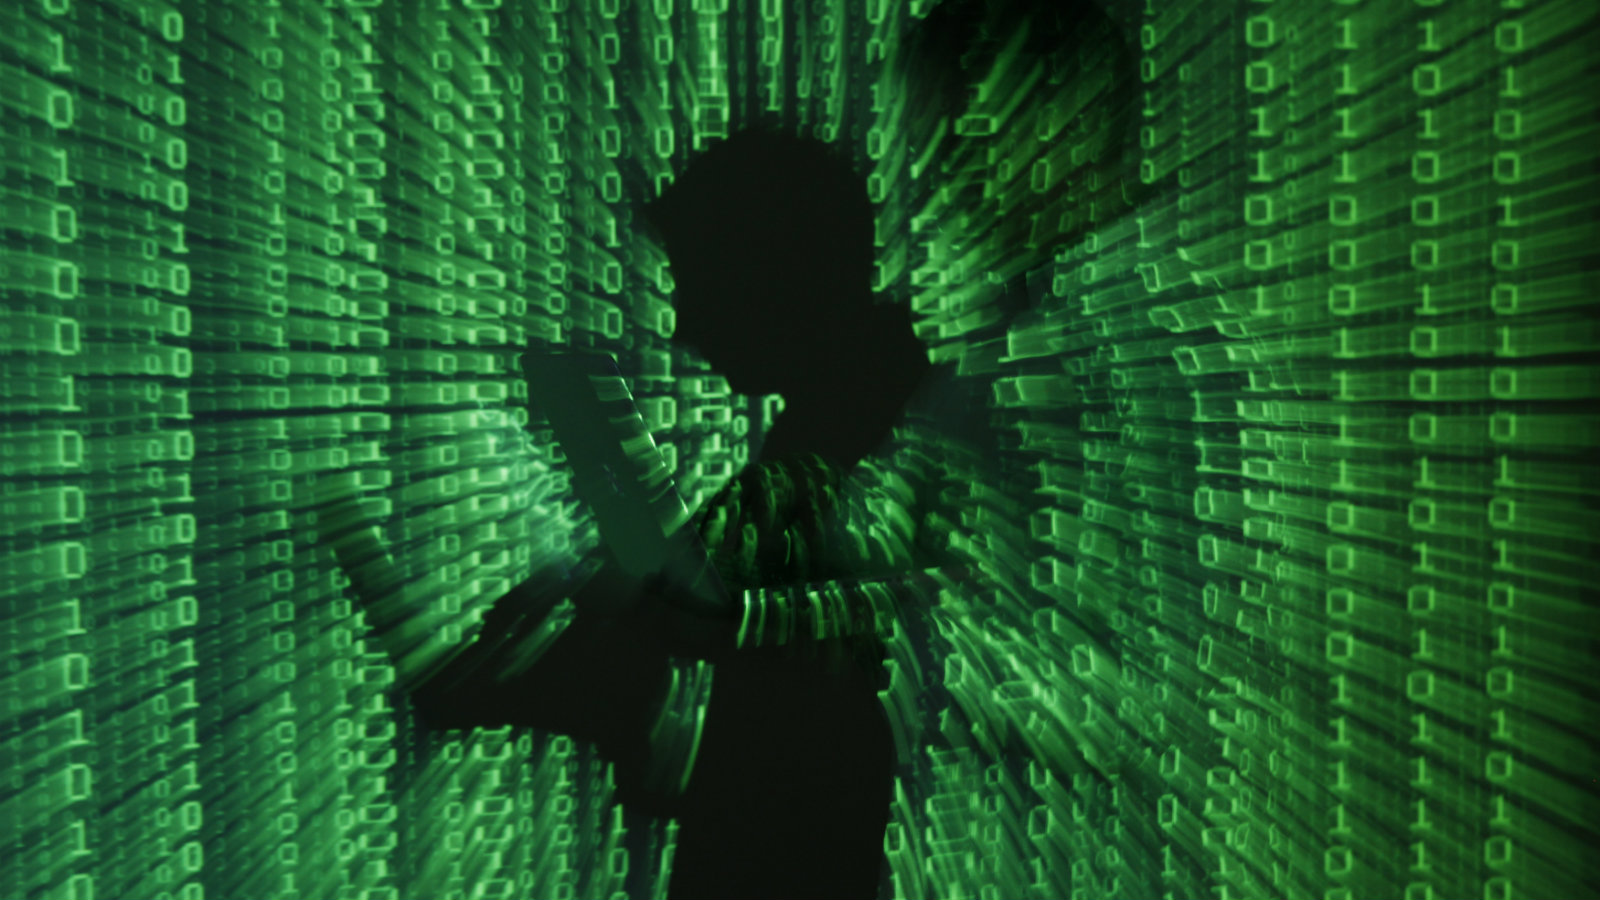 A startup is hacking into the Reserve Bank of India (RBI